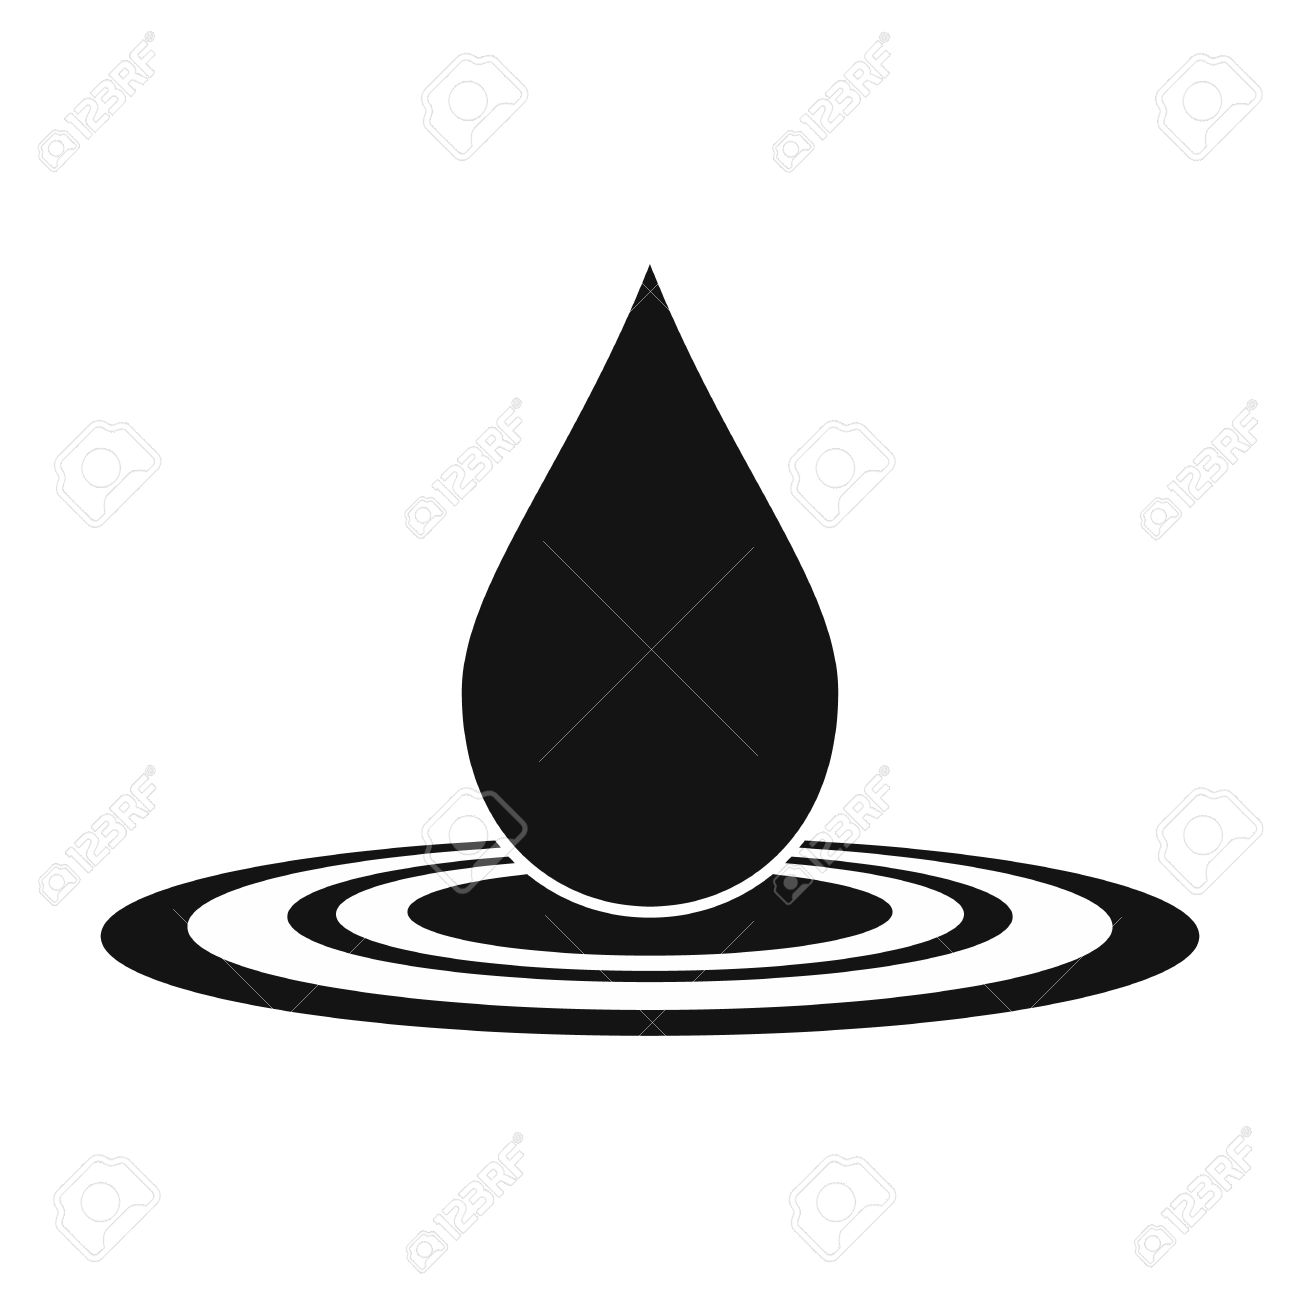 Vector water drop black simple icon isolated on white background